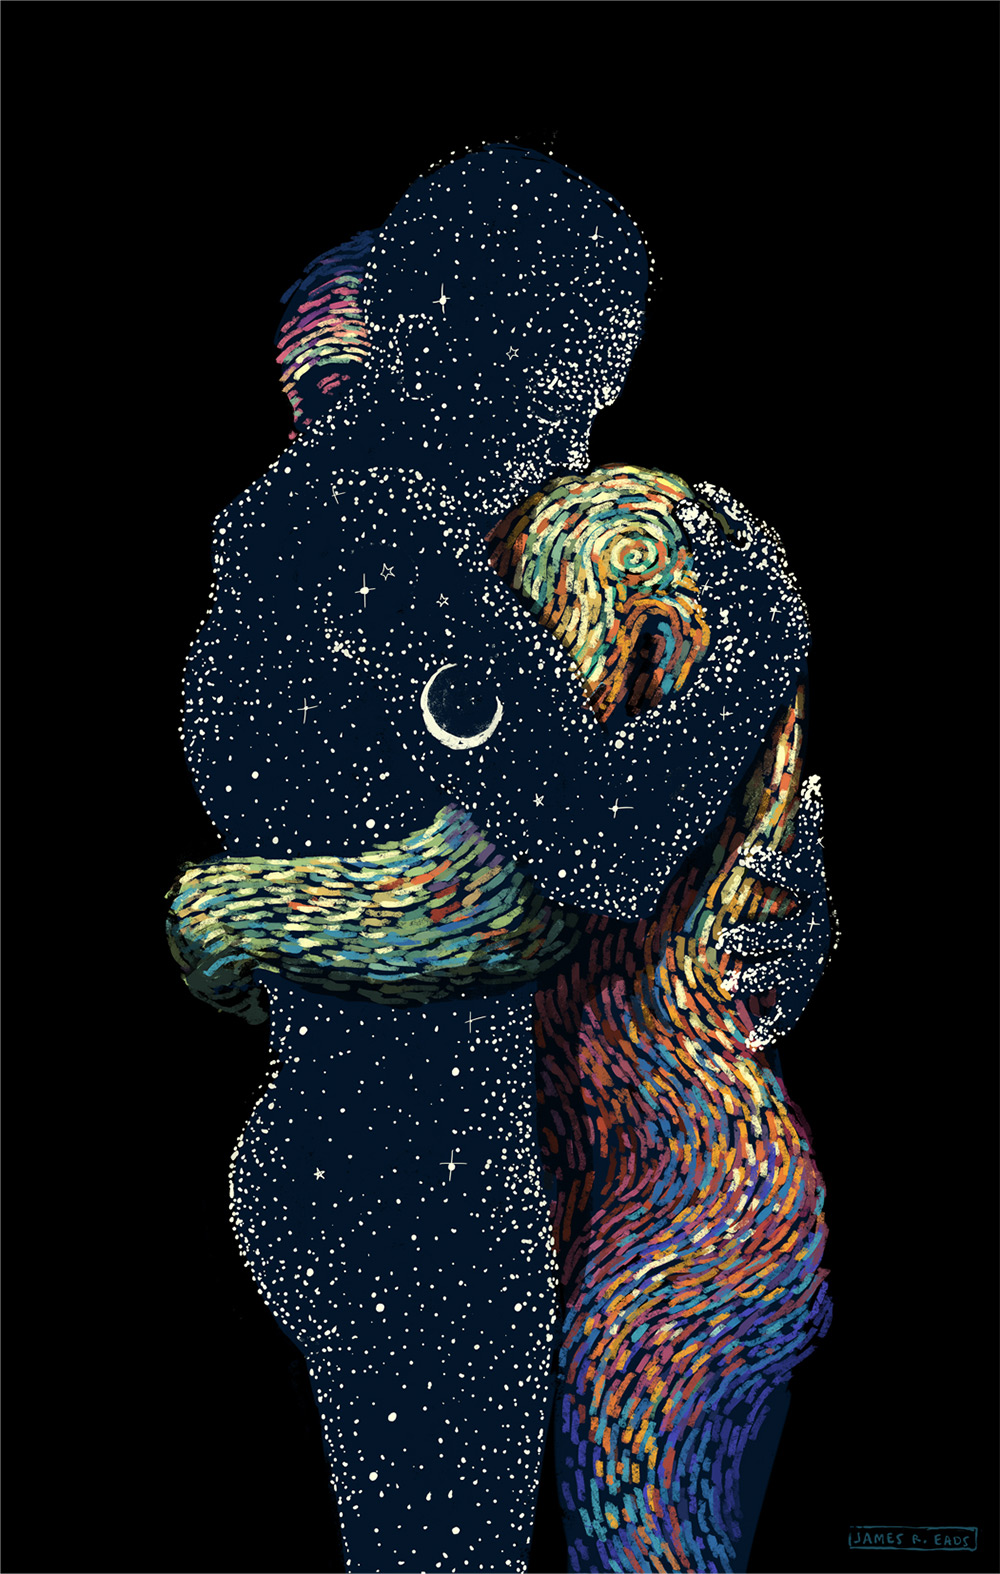 Swirling Illustrations by James R. Eads Explore Human ...